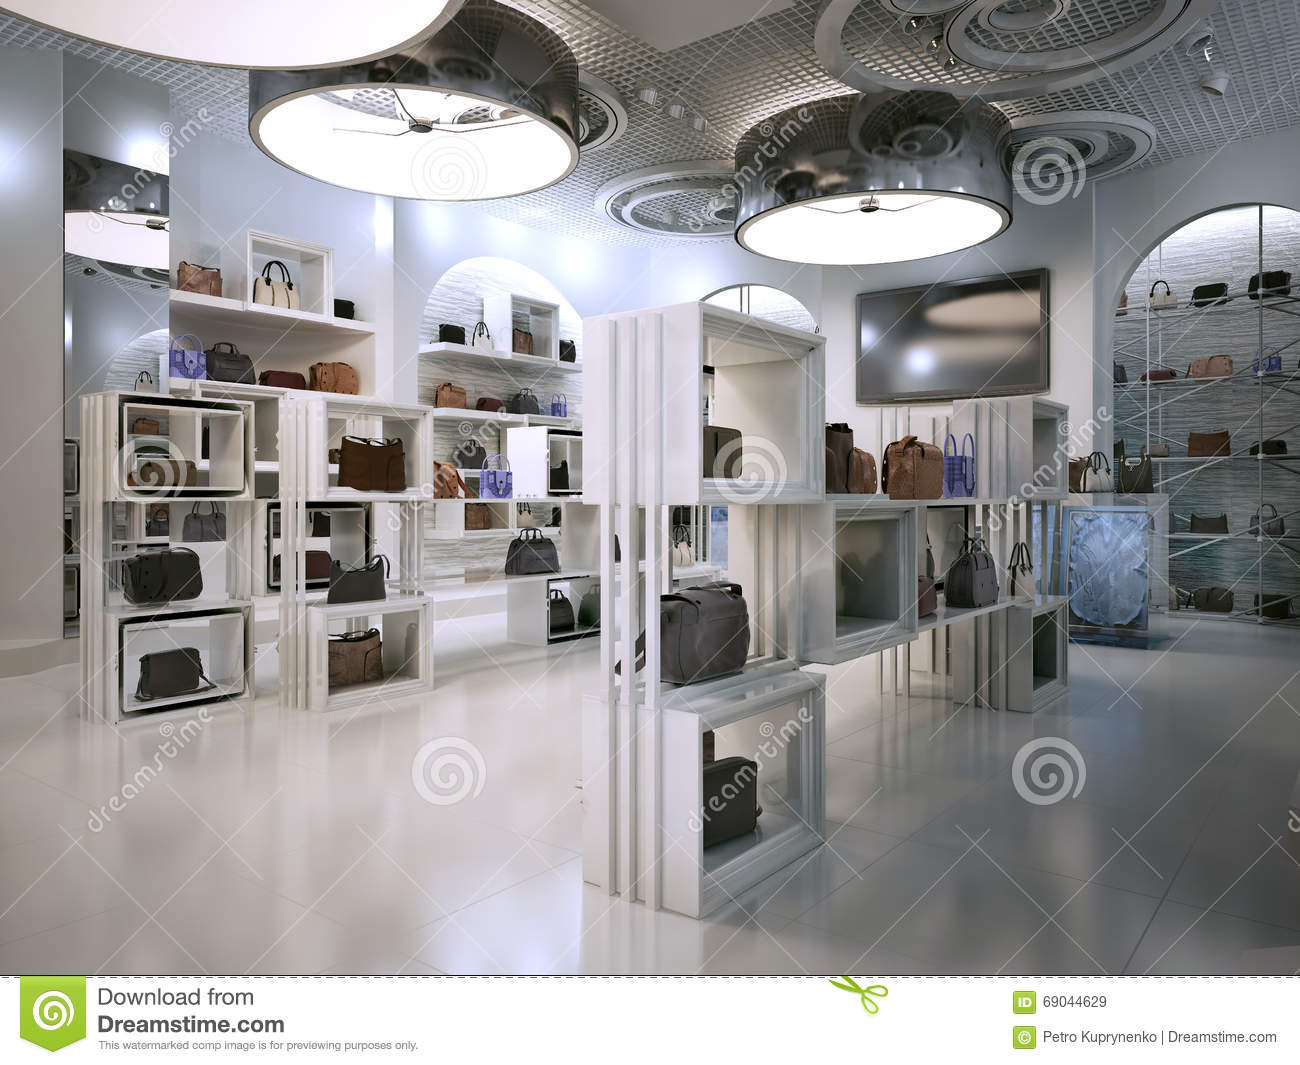 Luxury Store Interior Design Art Deco Style With Hints Of Contem Royalty Free Stock Images